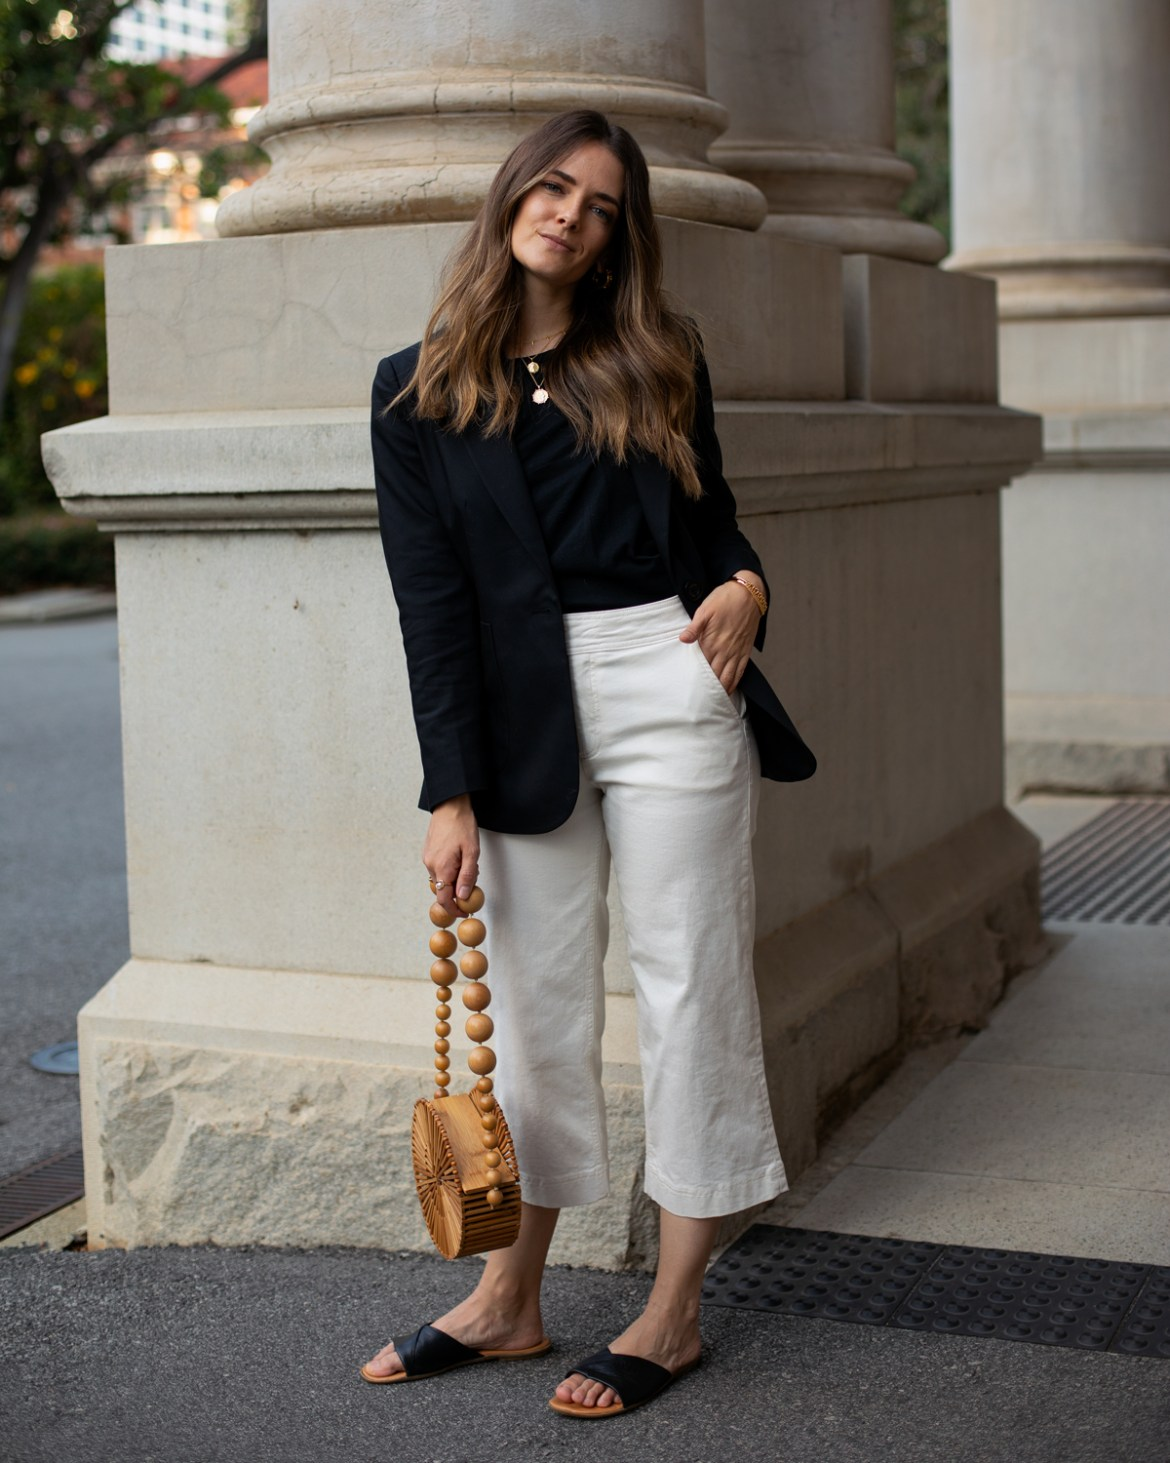 Black blazer, cream pants outfit with black slides and bamboo bag idea for everyday